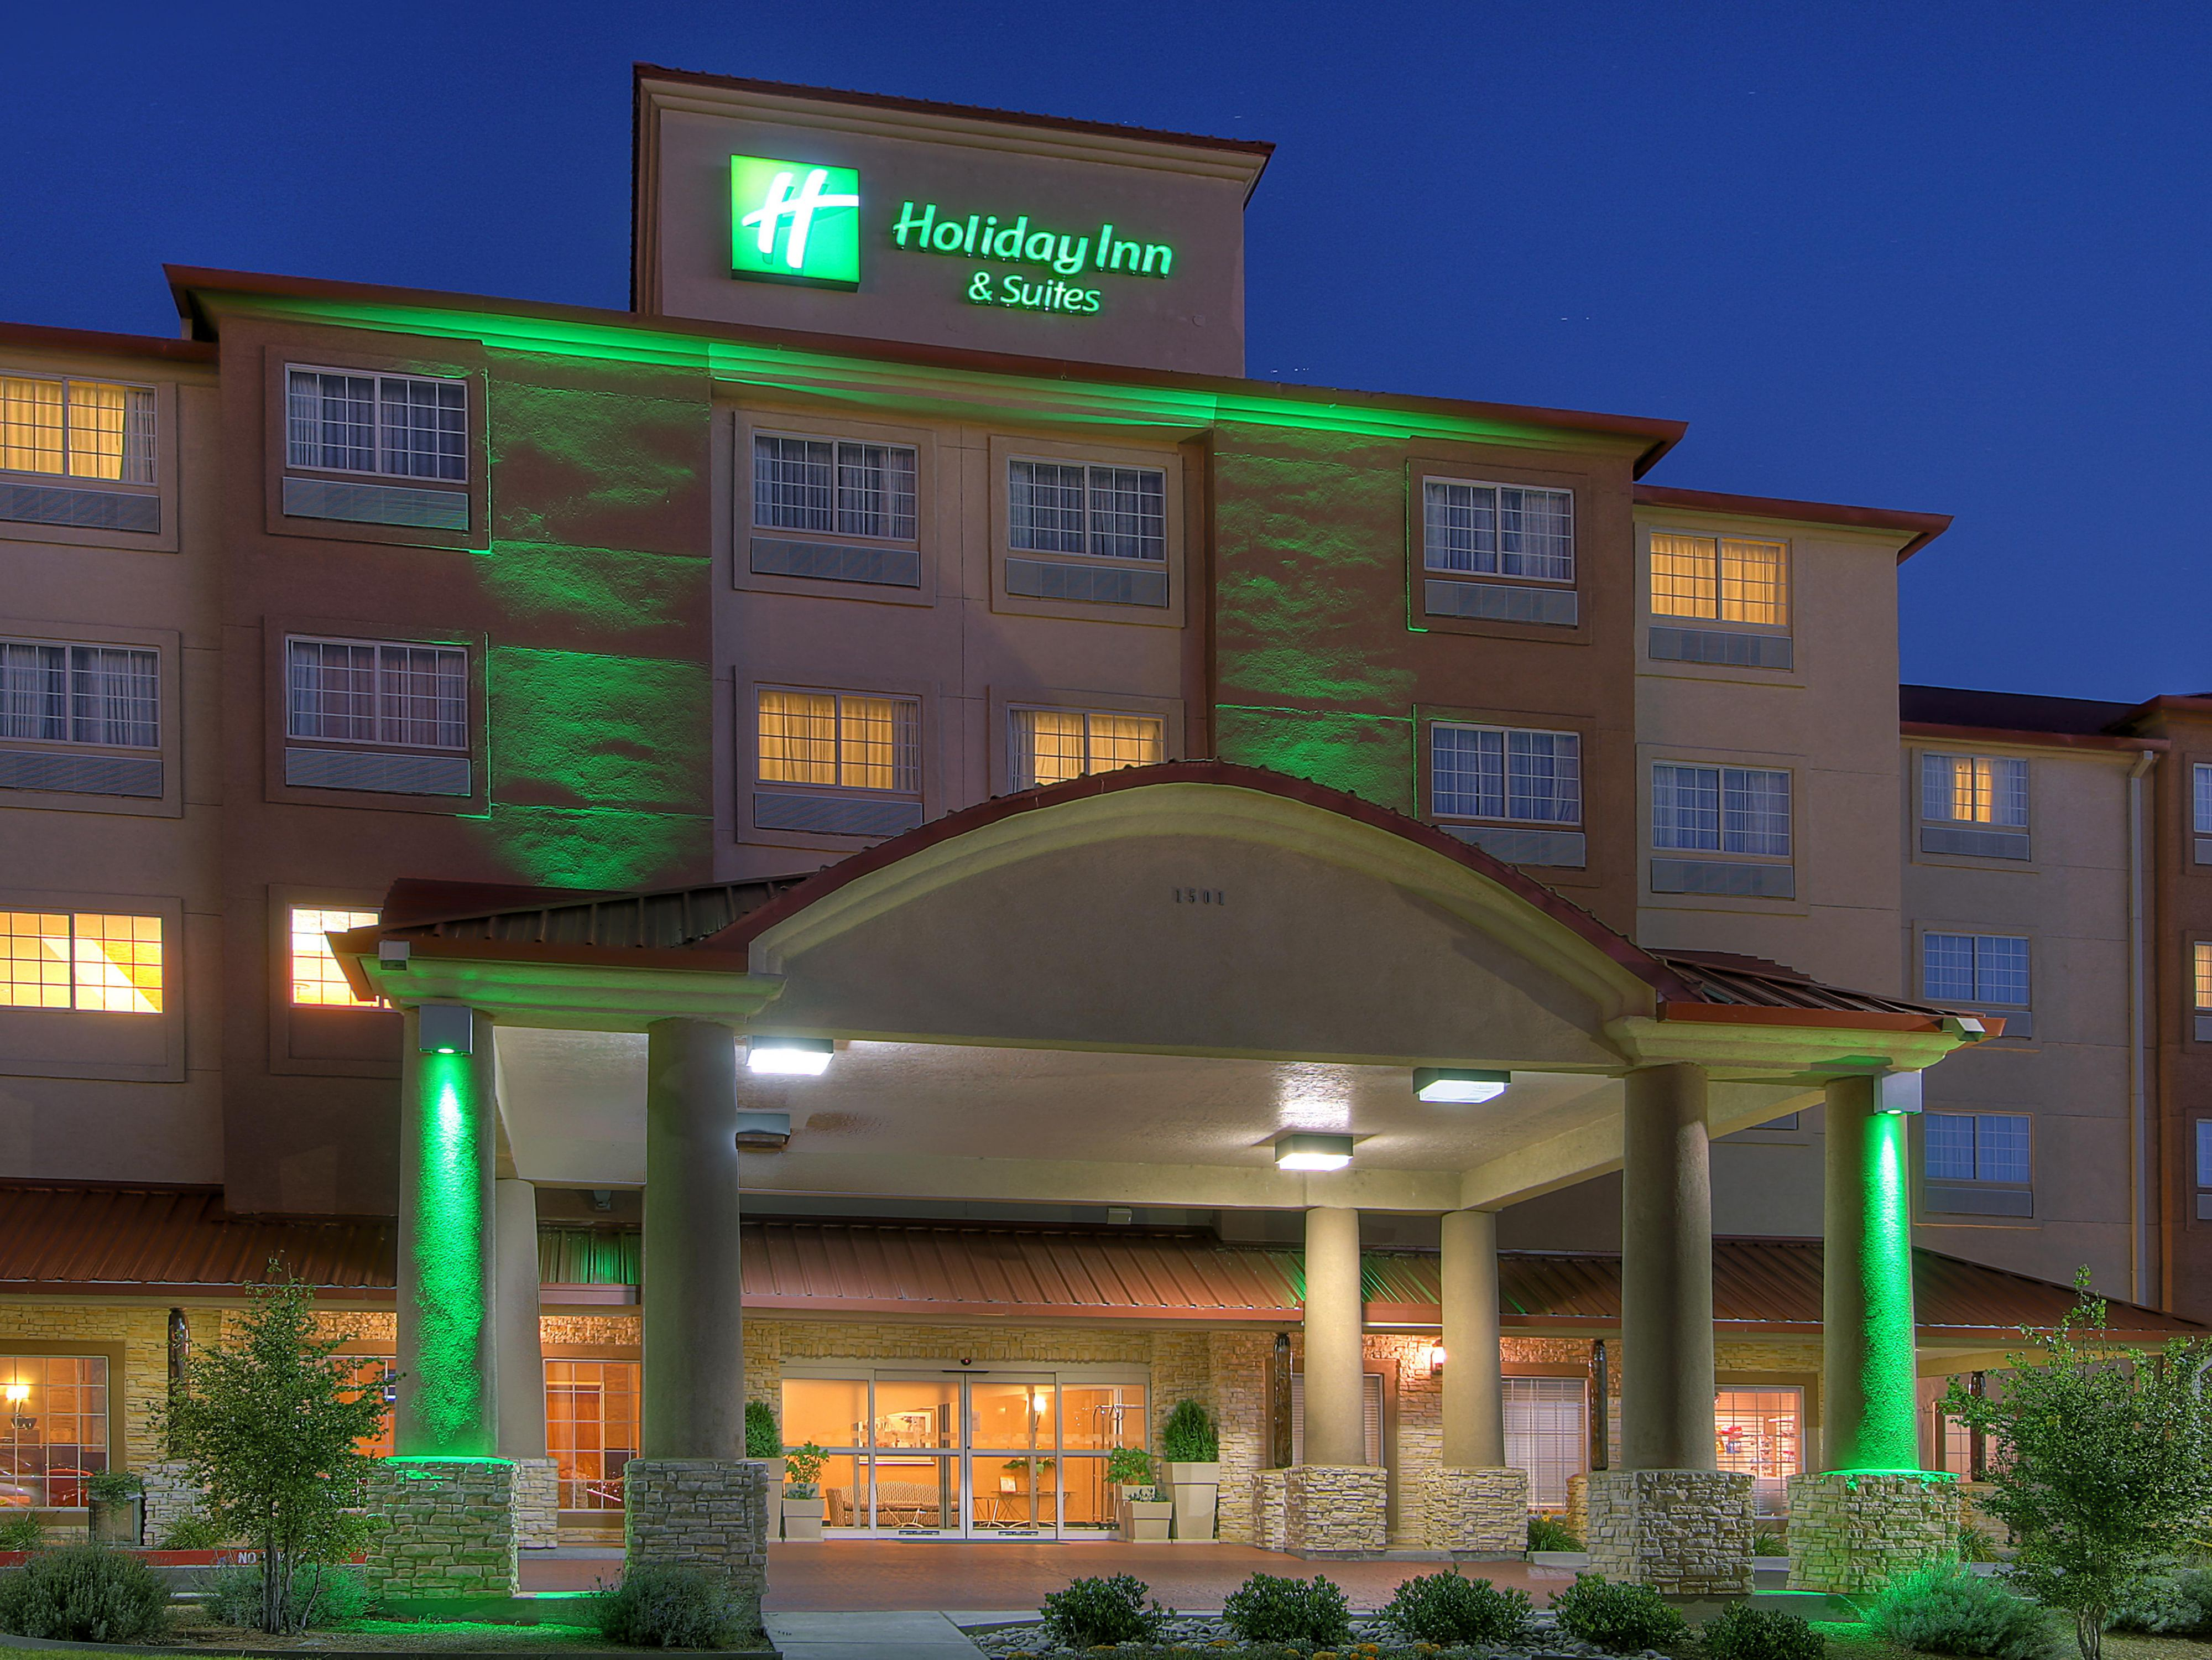 Albuquerque Holiday Inn & Suites Valley View Rooms